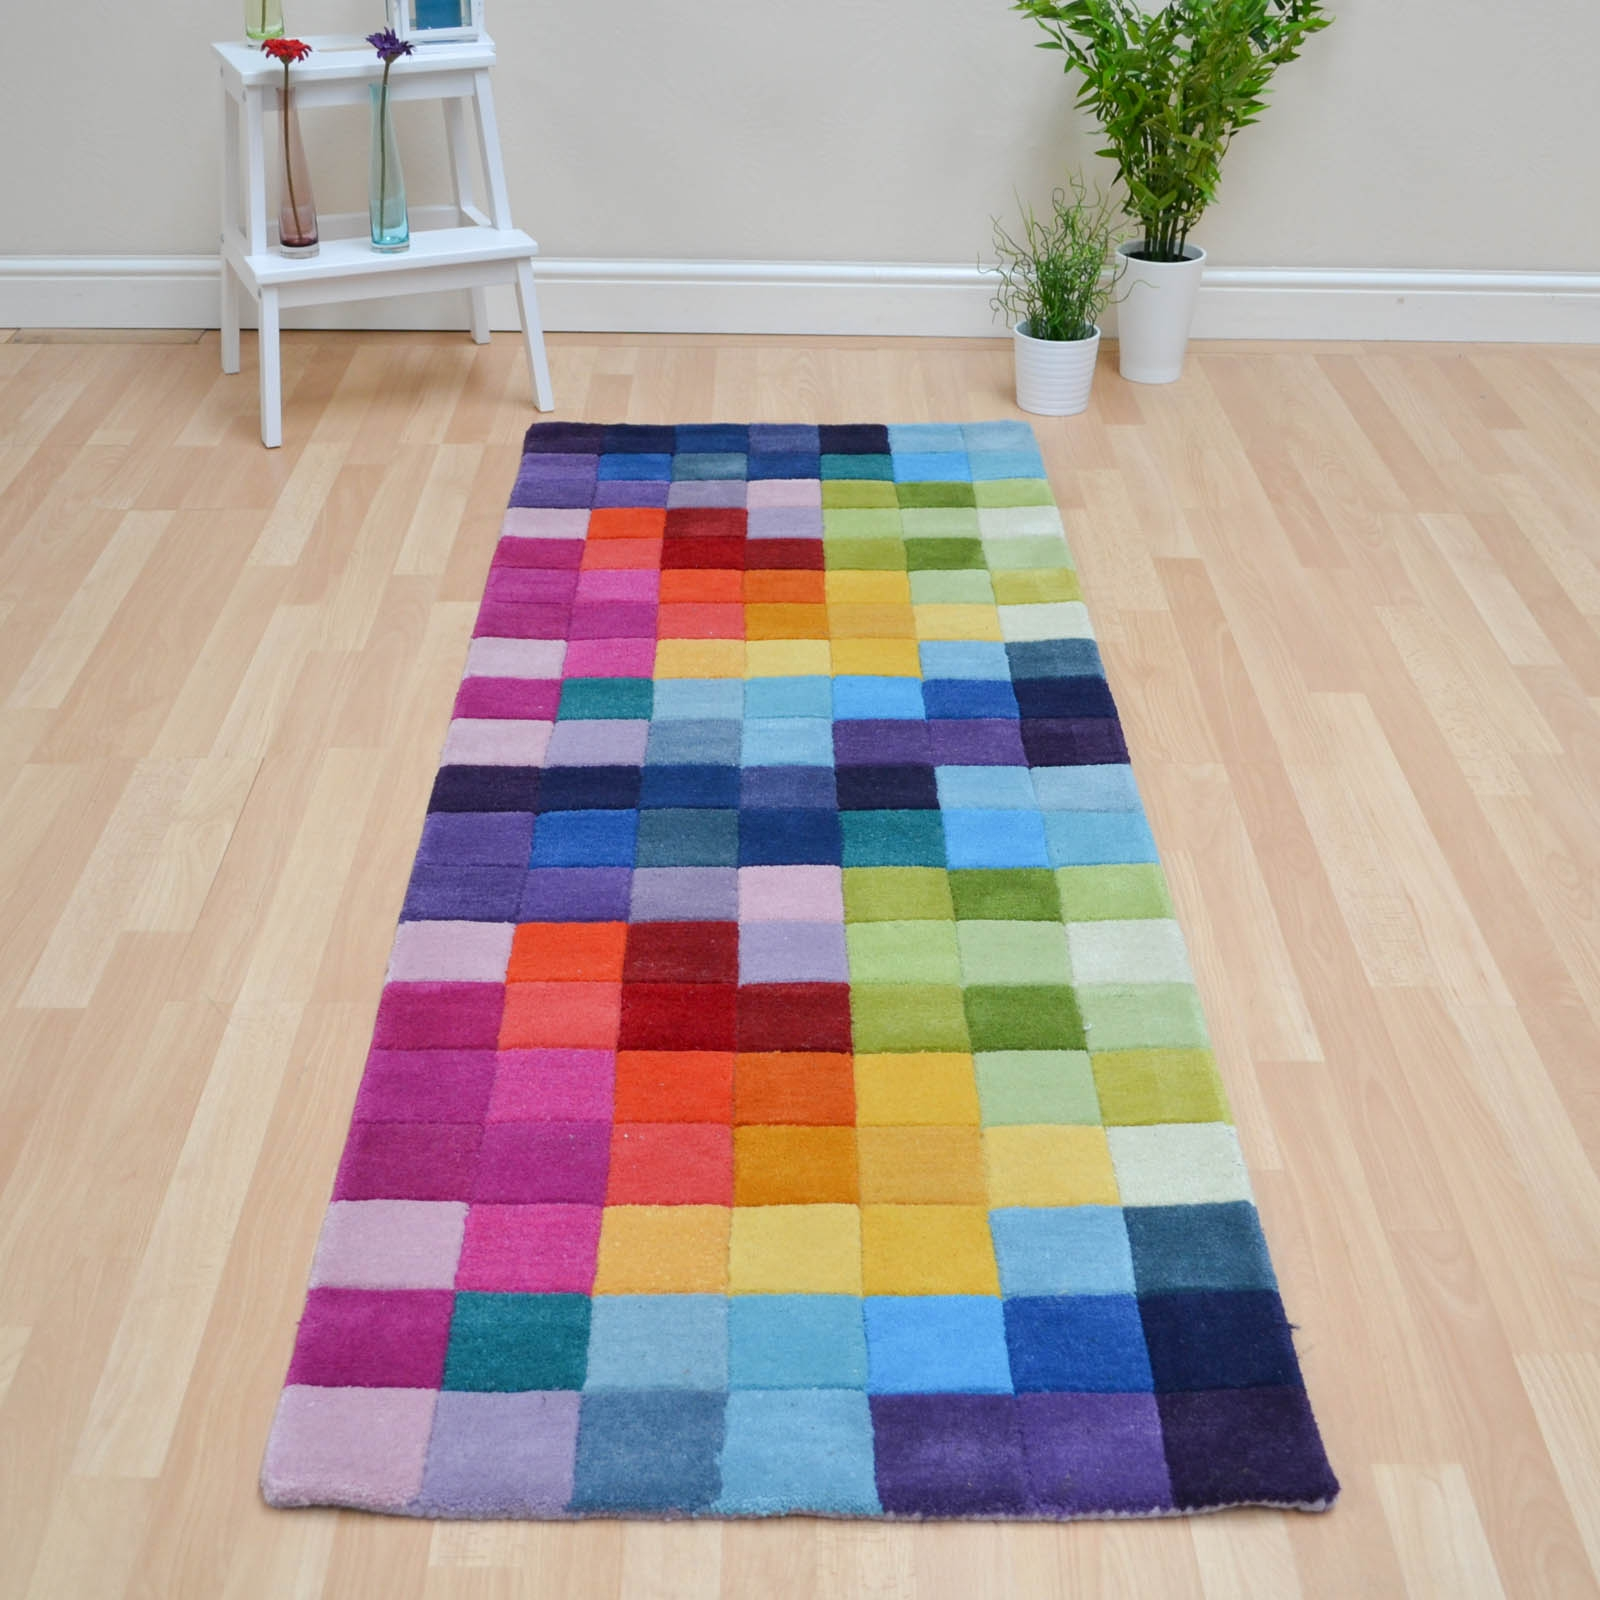 Hall Rugs Uk Roselawnlutheran Intended For Modern Hallway Runners (#13 of 20)